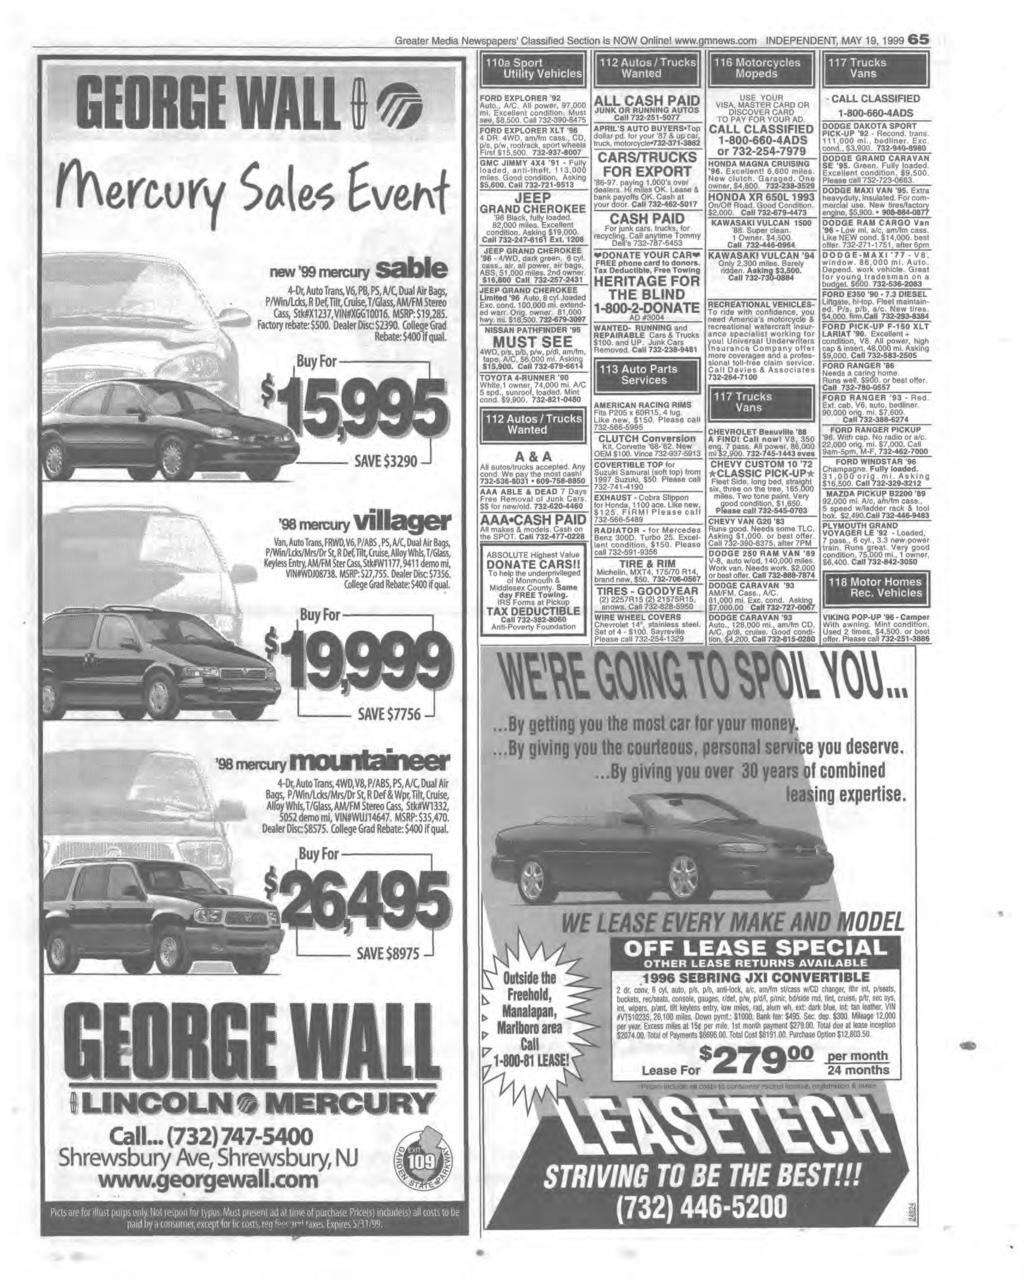 Att Opens Phase One Of Laurel Avenue Expansion Pdf Air Conditioning Four Season System Wiring Diagram C K Models For 1979 Gmc Light Duty Truck Series 10 35